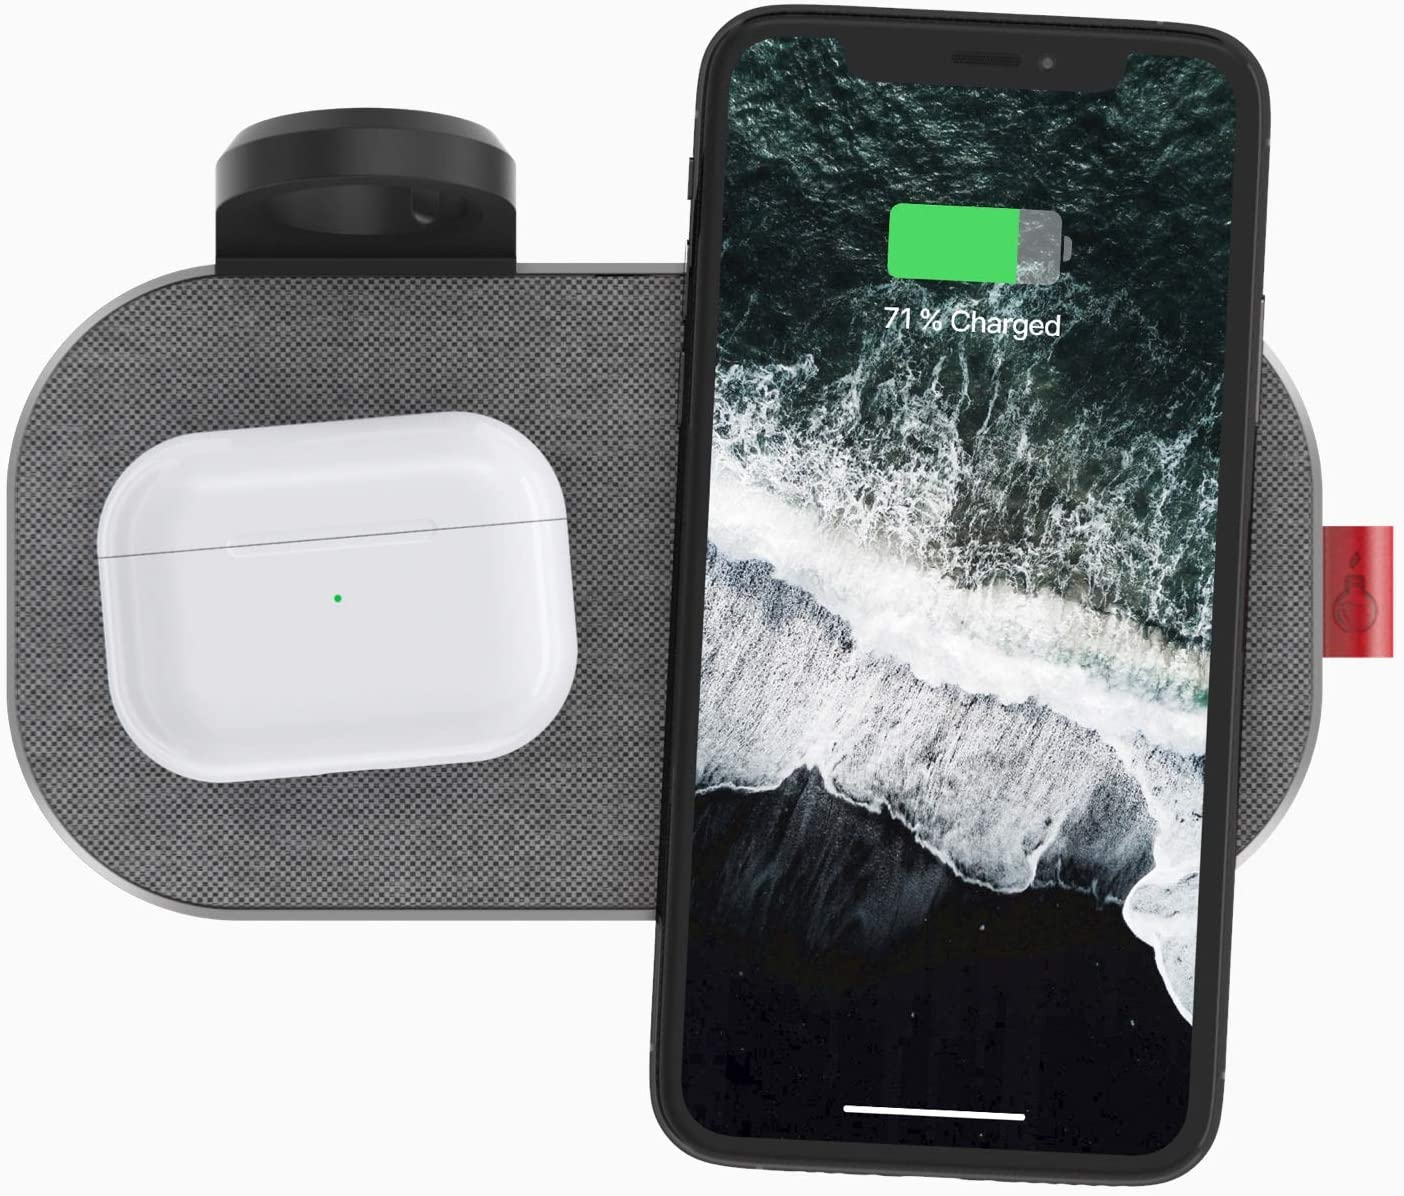 SliceCharge 3 Hub Edition Fast Wireless Charger Pad,4-in-1 Qi-Certified 10W Wireless Charging Mat, Compatible iPhone 12/12 Pro/ 12 Pro Max,Samsung Galaxy,AirPods Pro(48W Adapter Included)